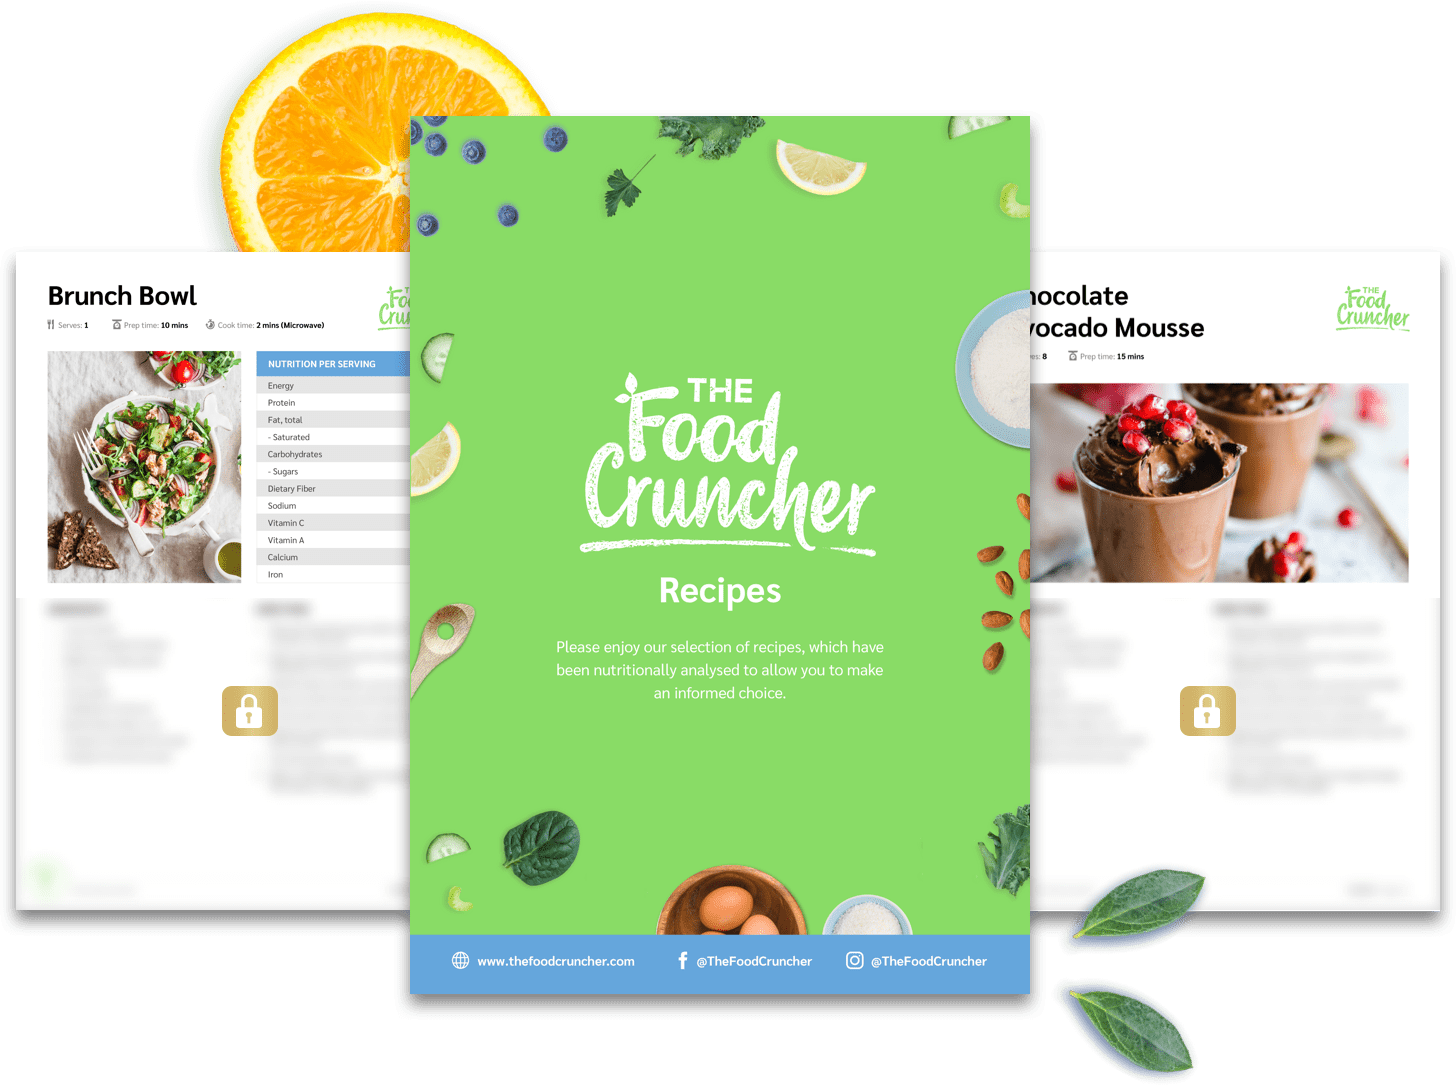 The Food Cruncher Recipes